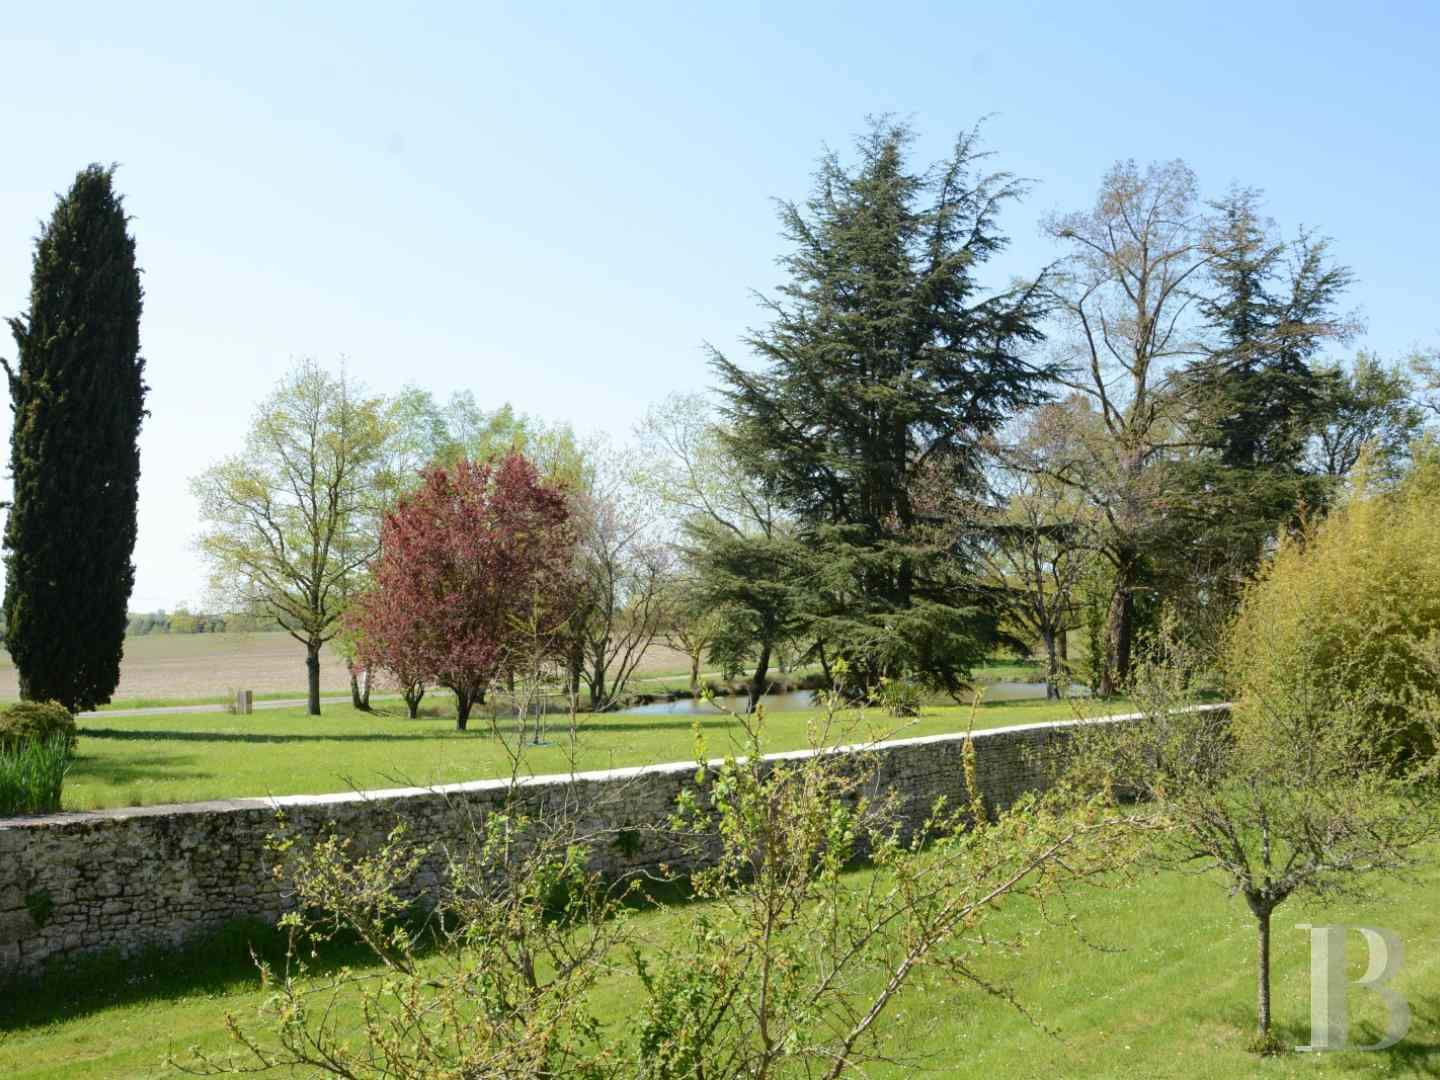 property for sale France center val de loire hunting grounds - 16 zoom